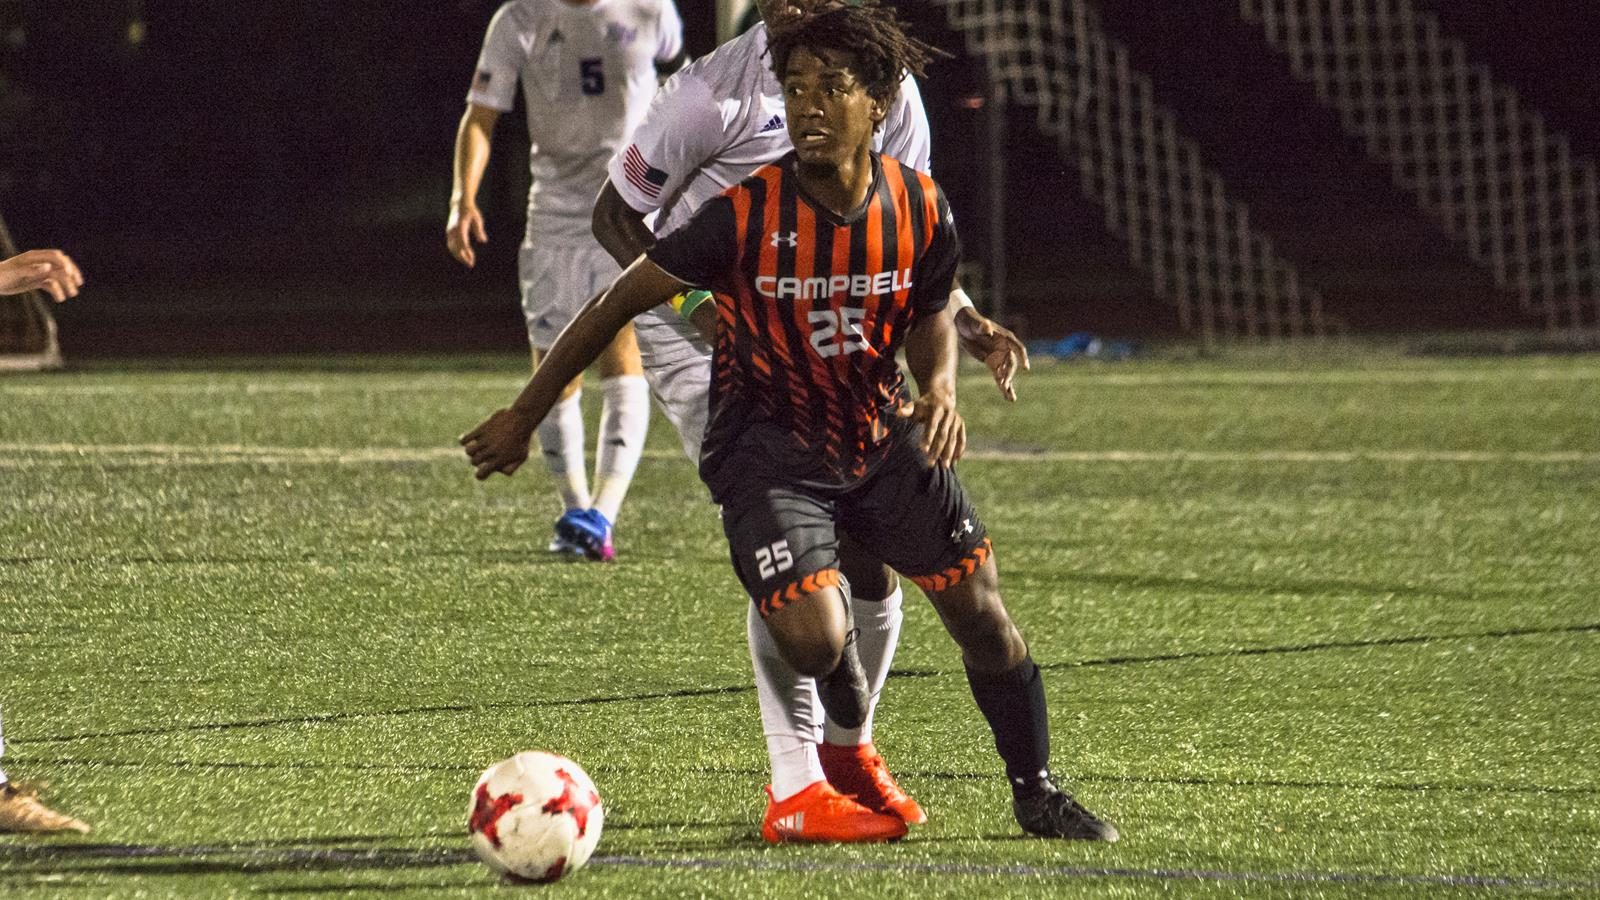 Alemu Mercer Miko Men S Soccer Campbell University